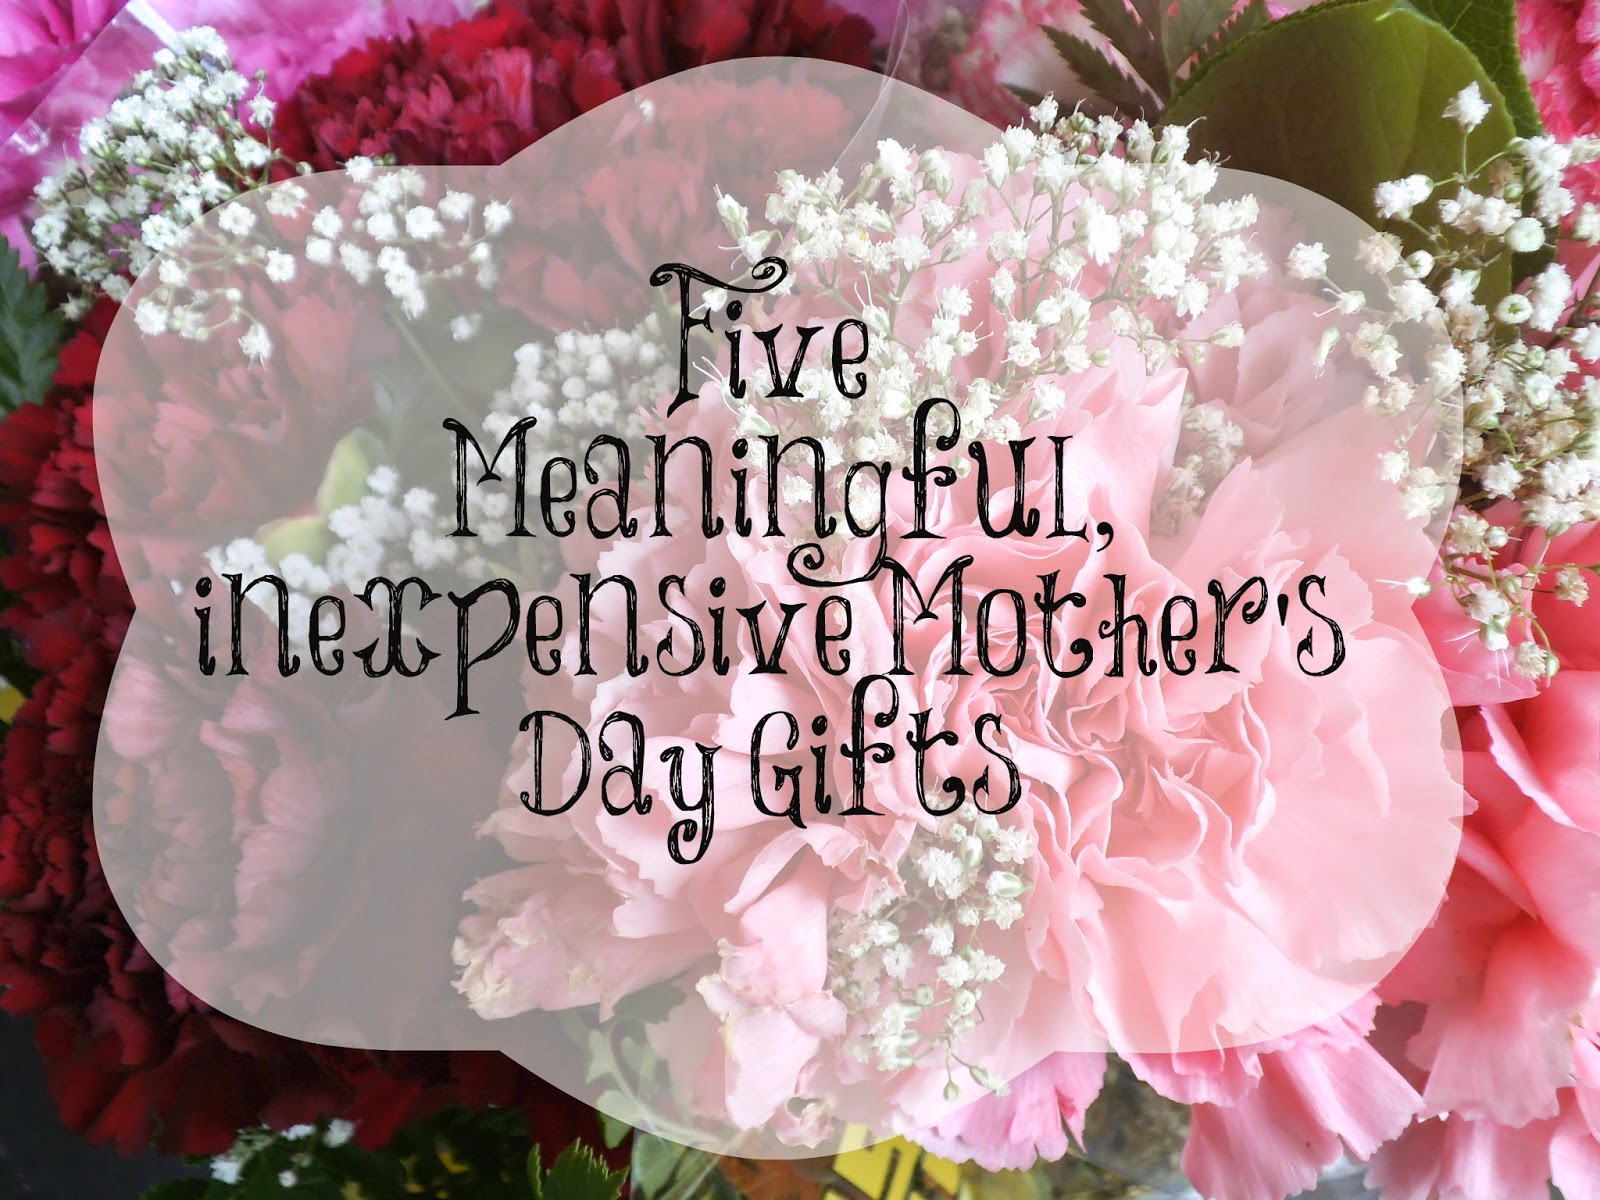 The Peculiar Treasure: 5 Meaningful Mother's Day Gifts